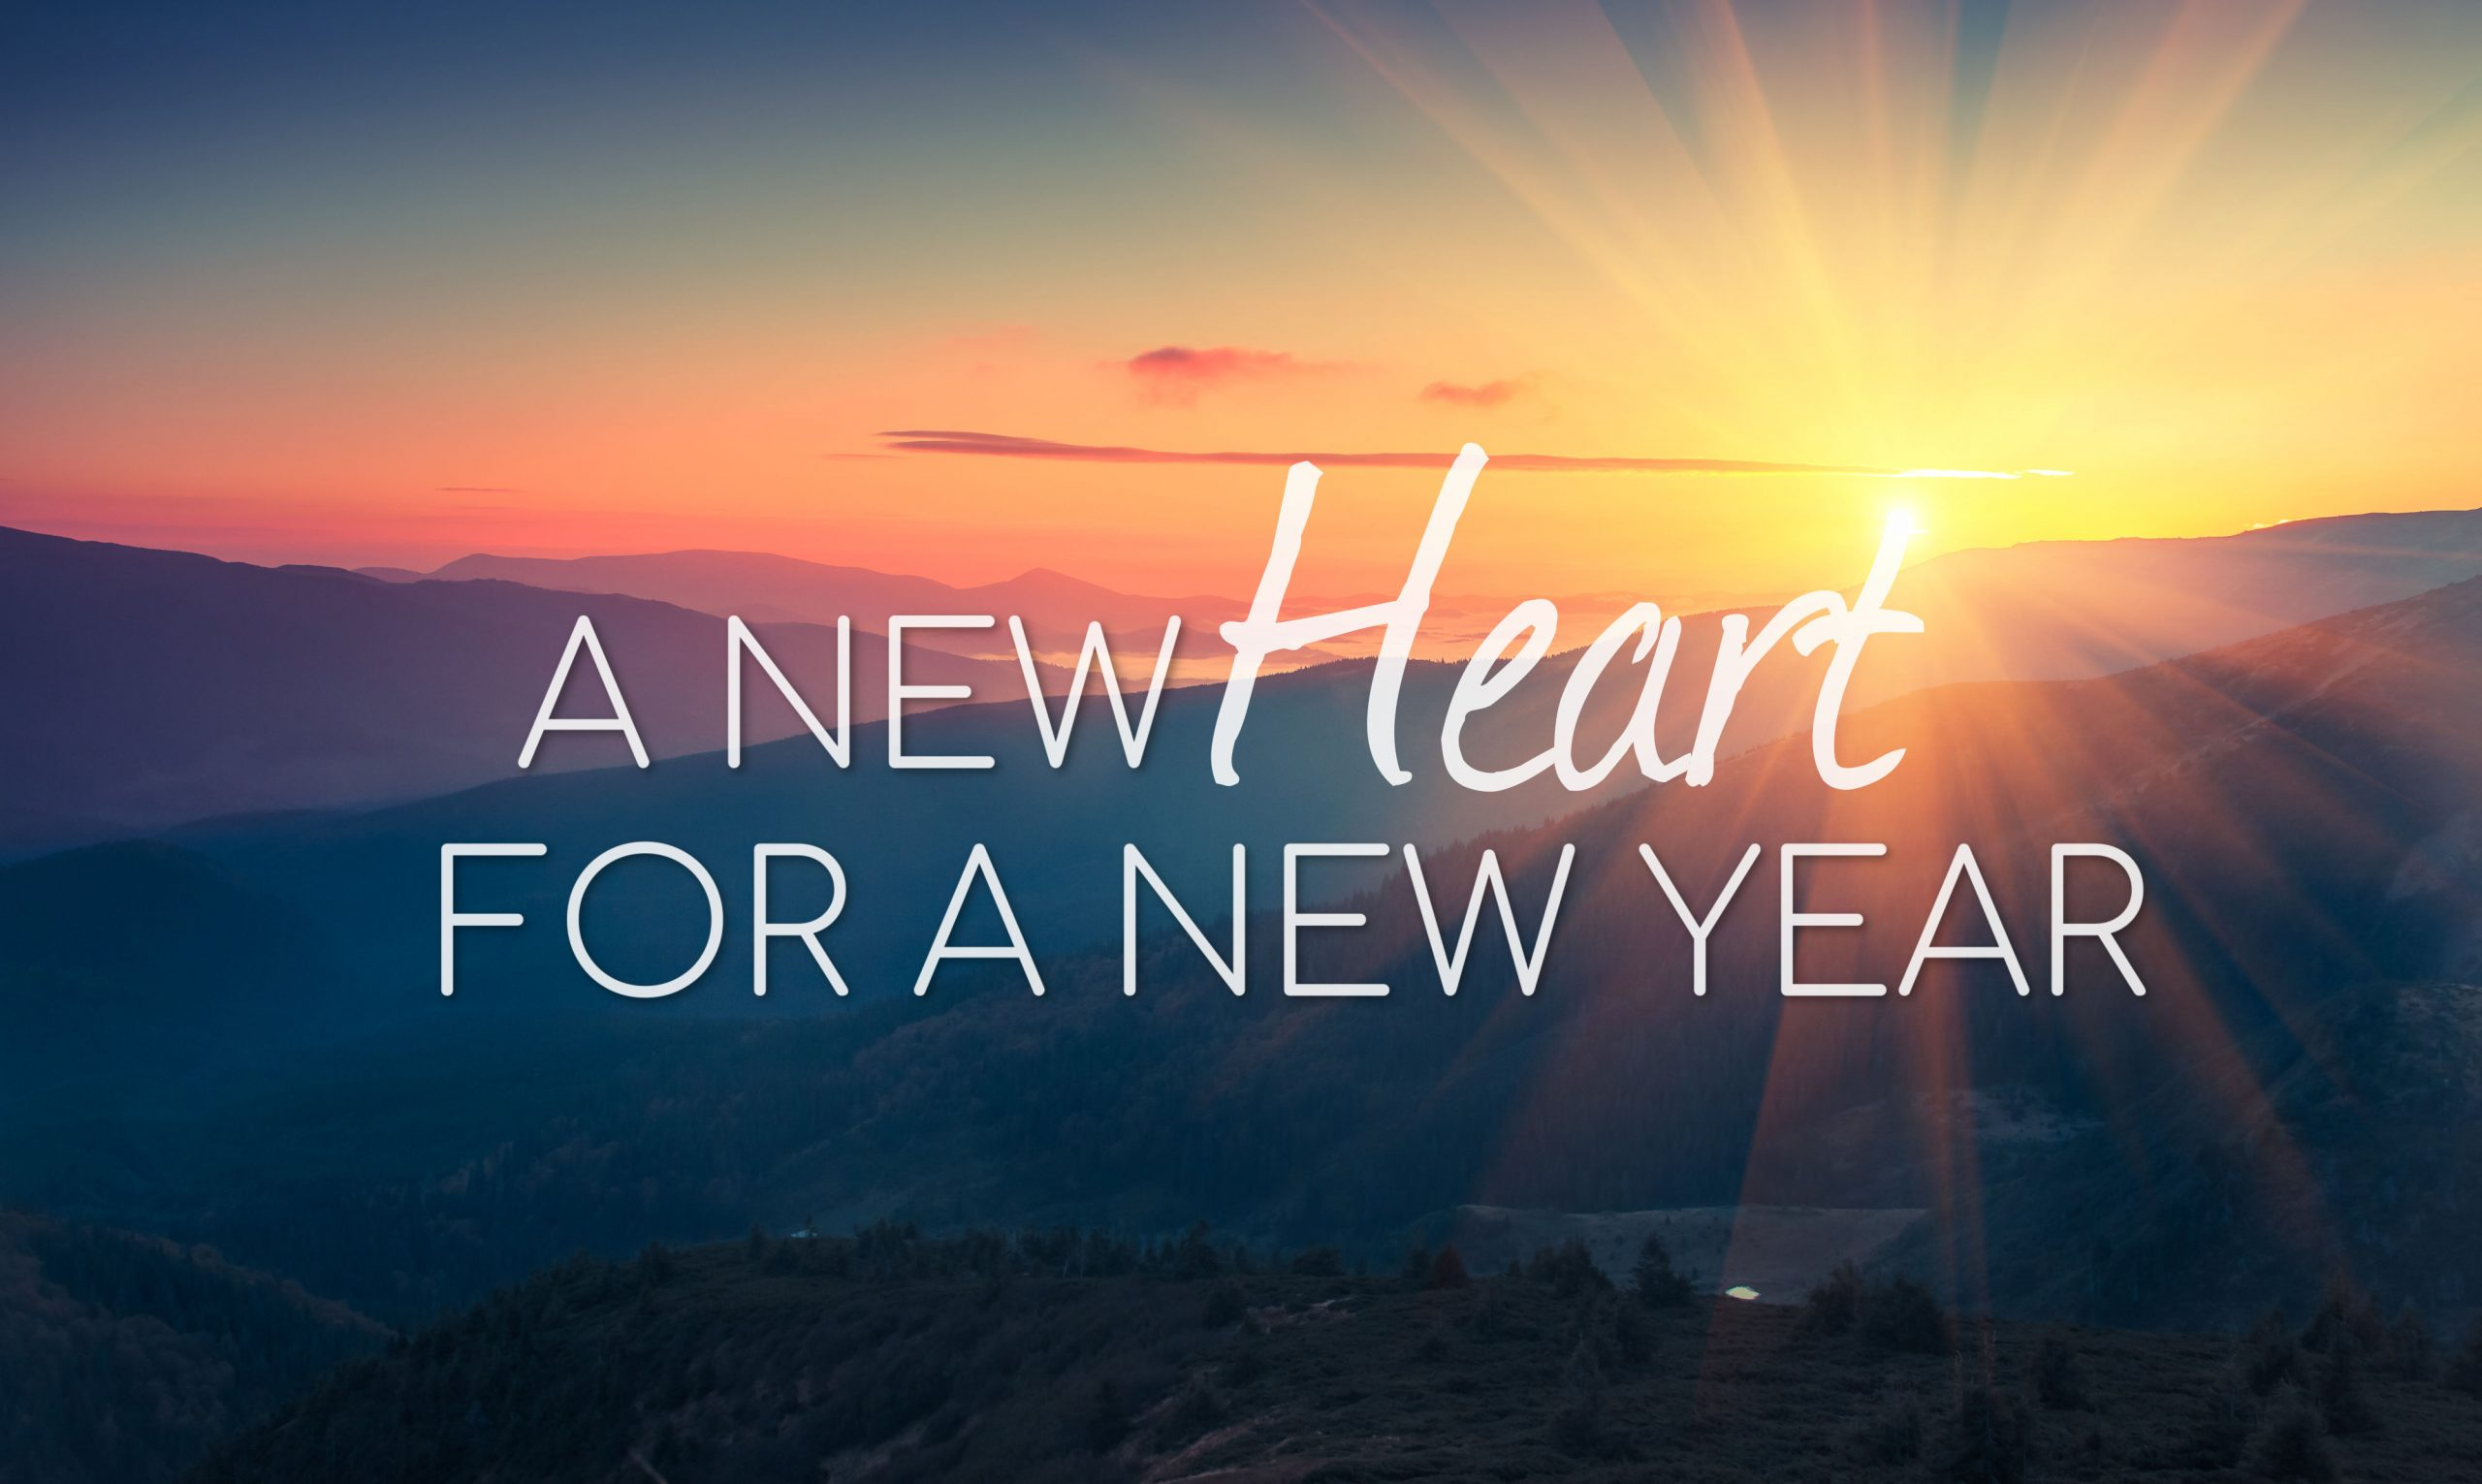 A New Heart for a New Year: Wisdom that Directs